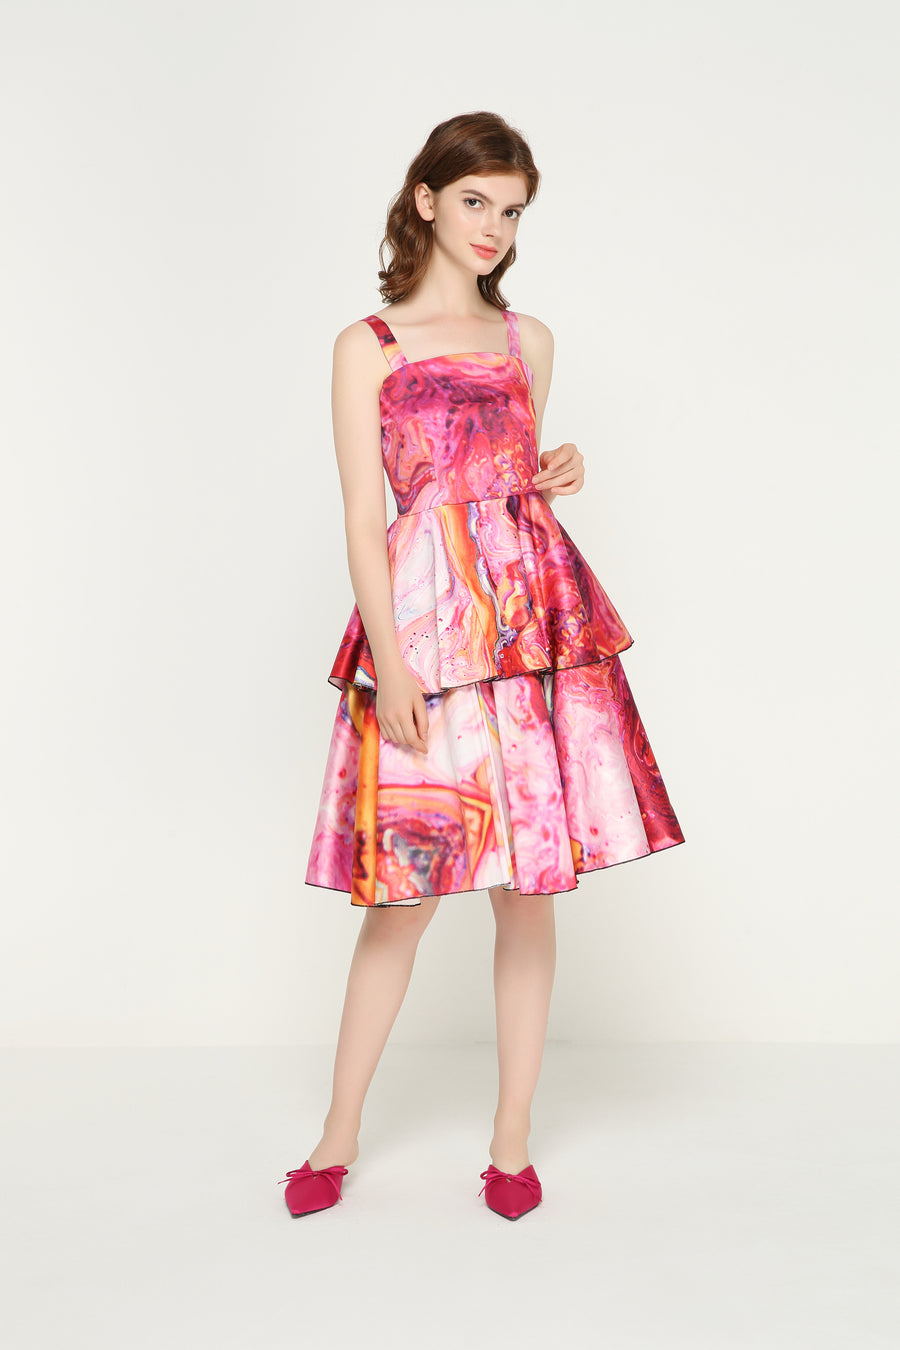 EVELYN Satin Layer Dress